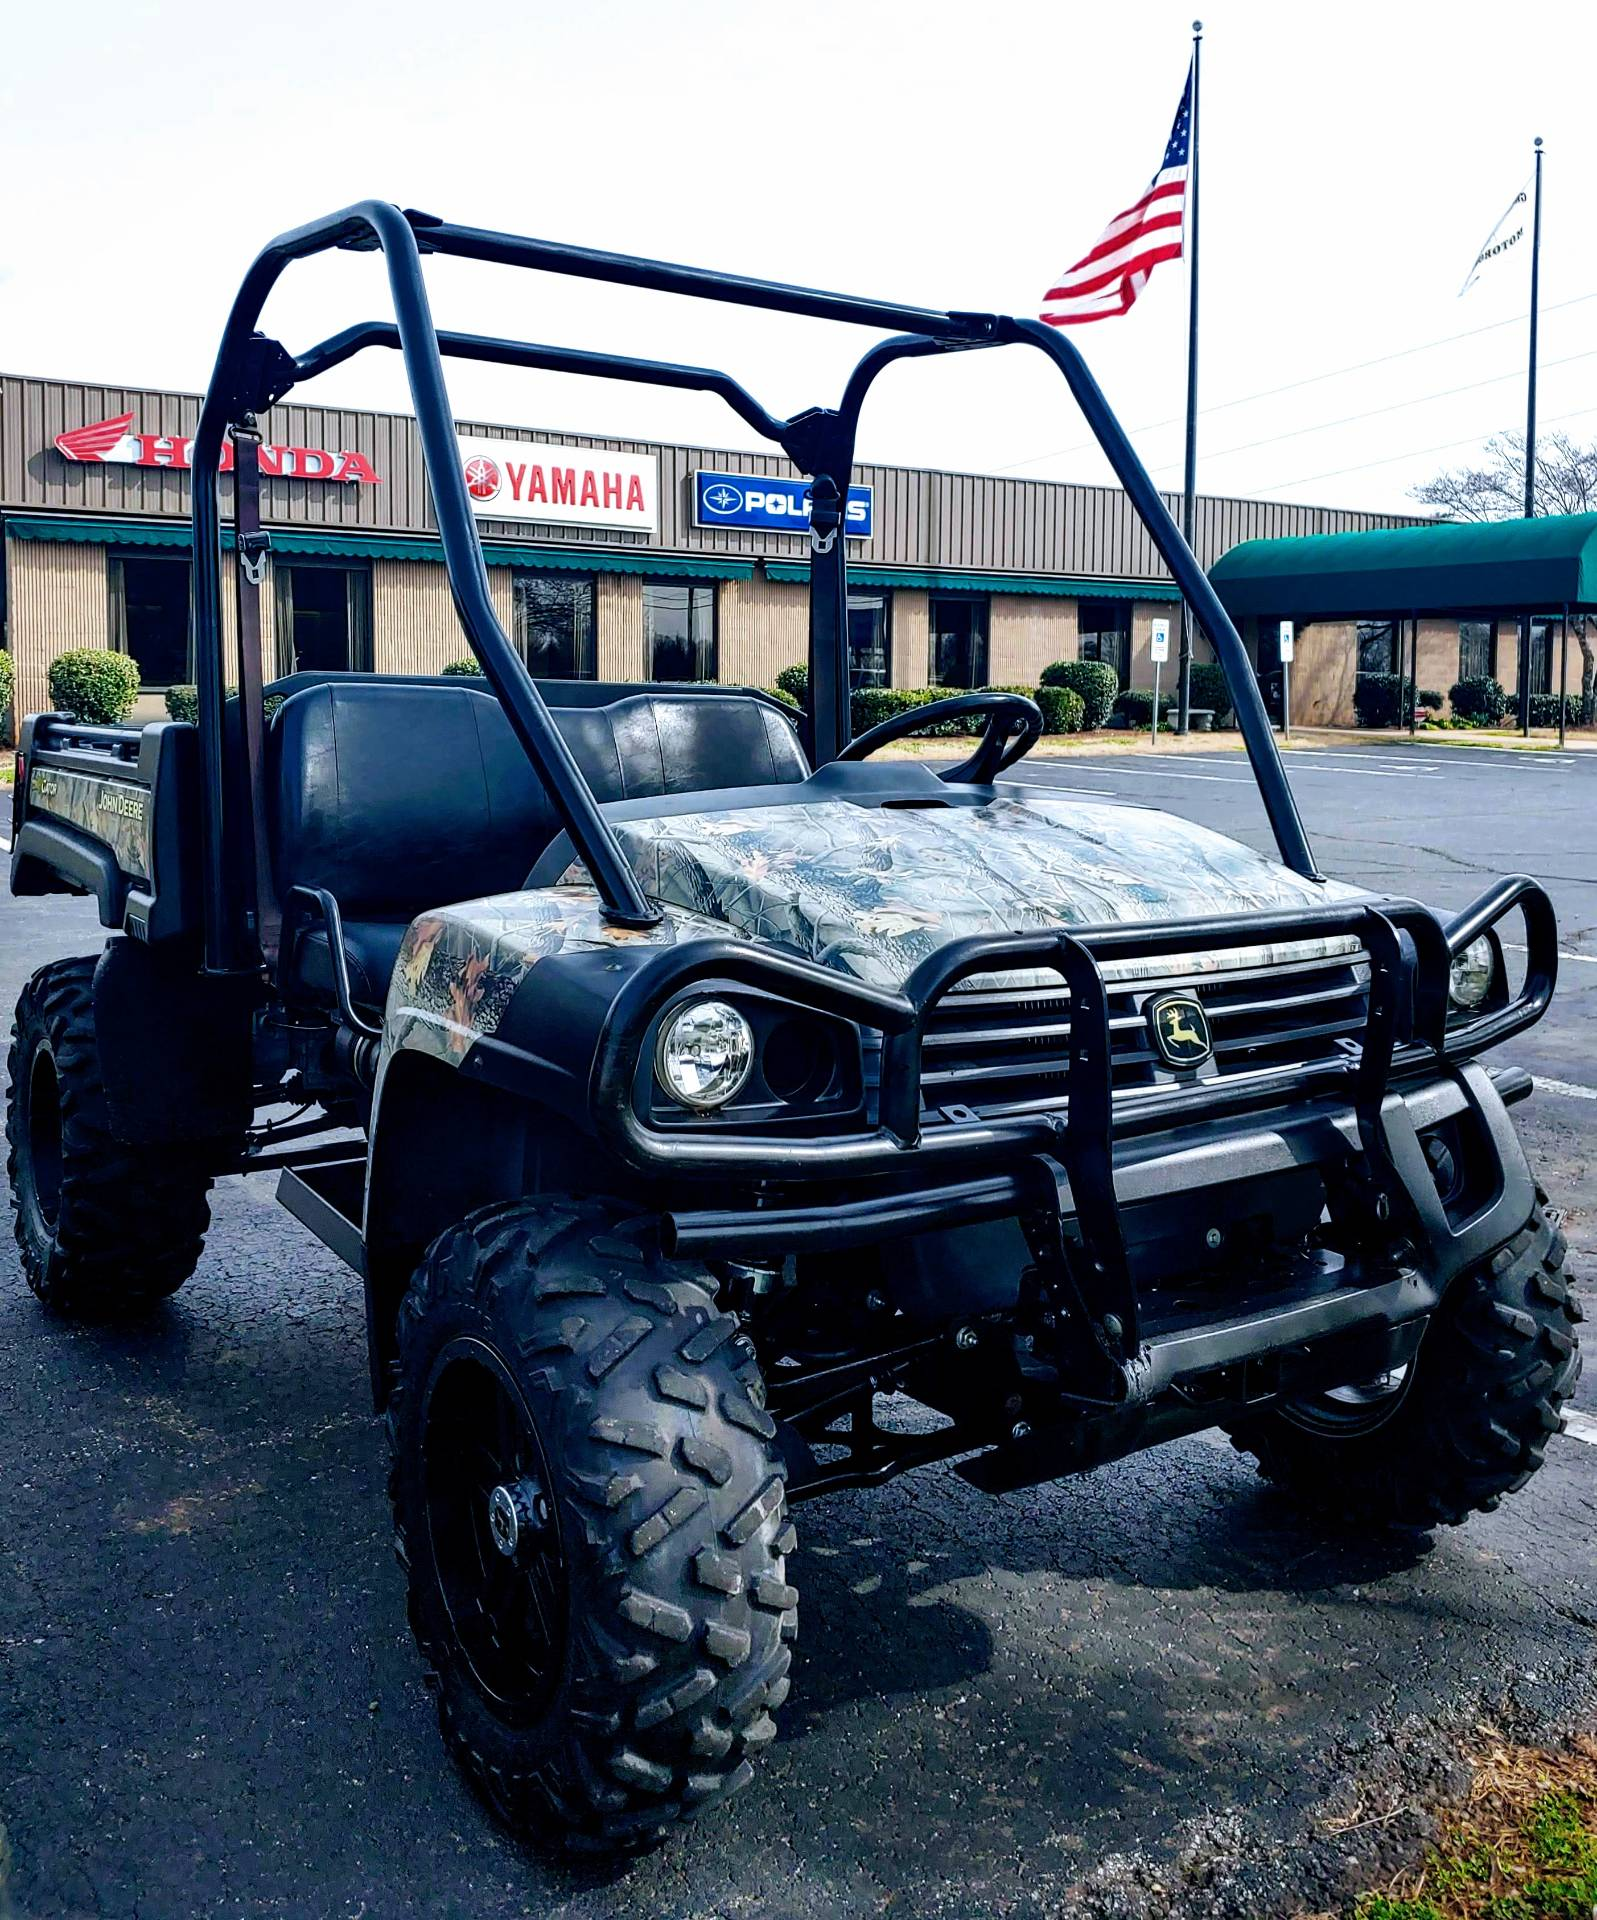 2010 John Deere Gator 825i in Statesville, North Carolina